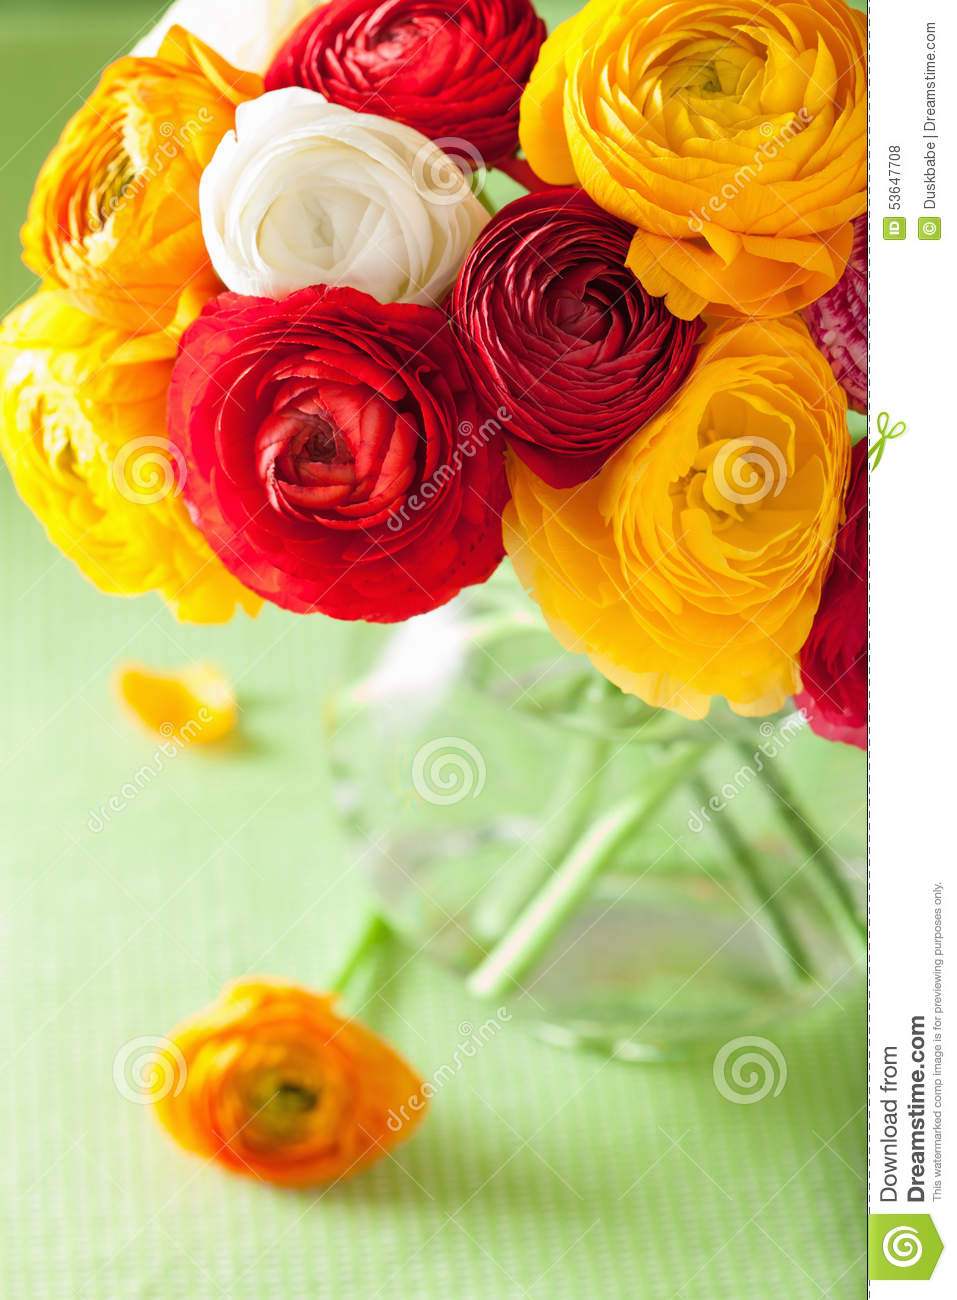 Colorful Ranunculus Flowers In Vase Over Green Background Stock ...